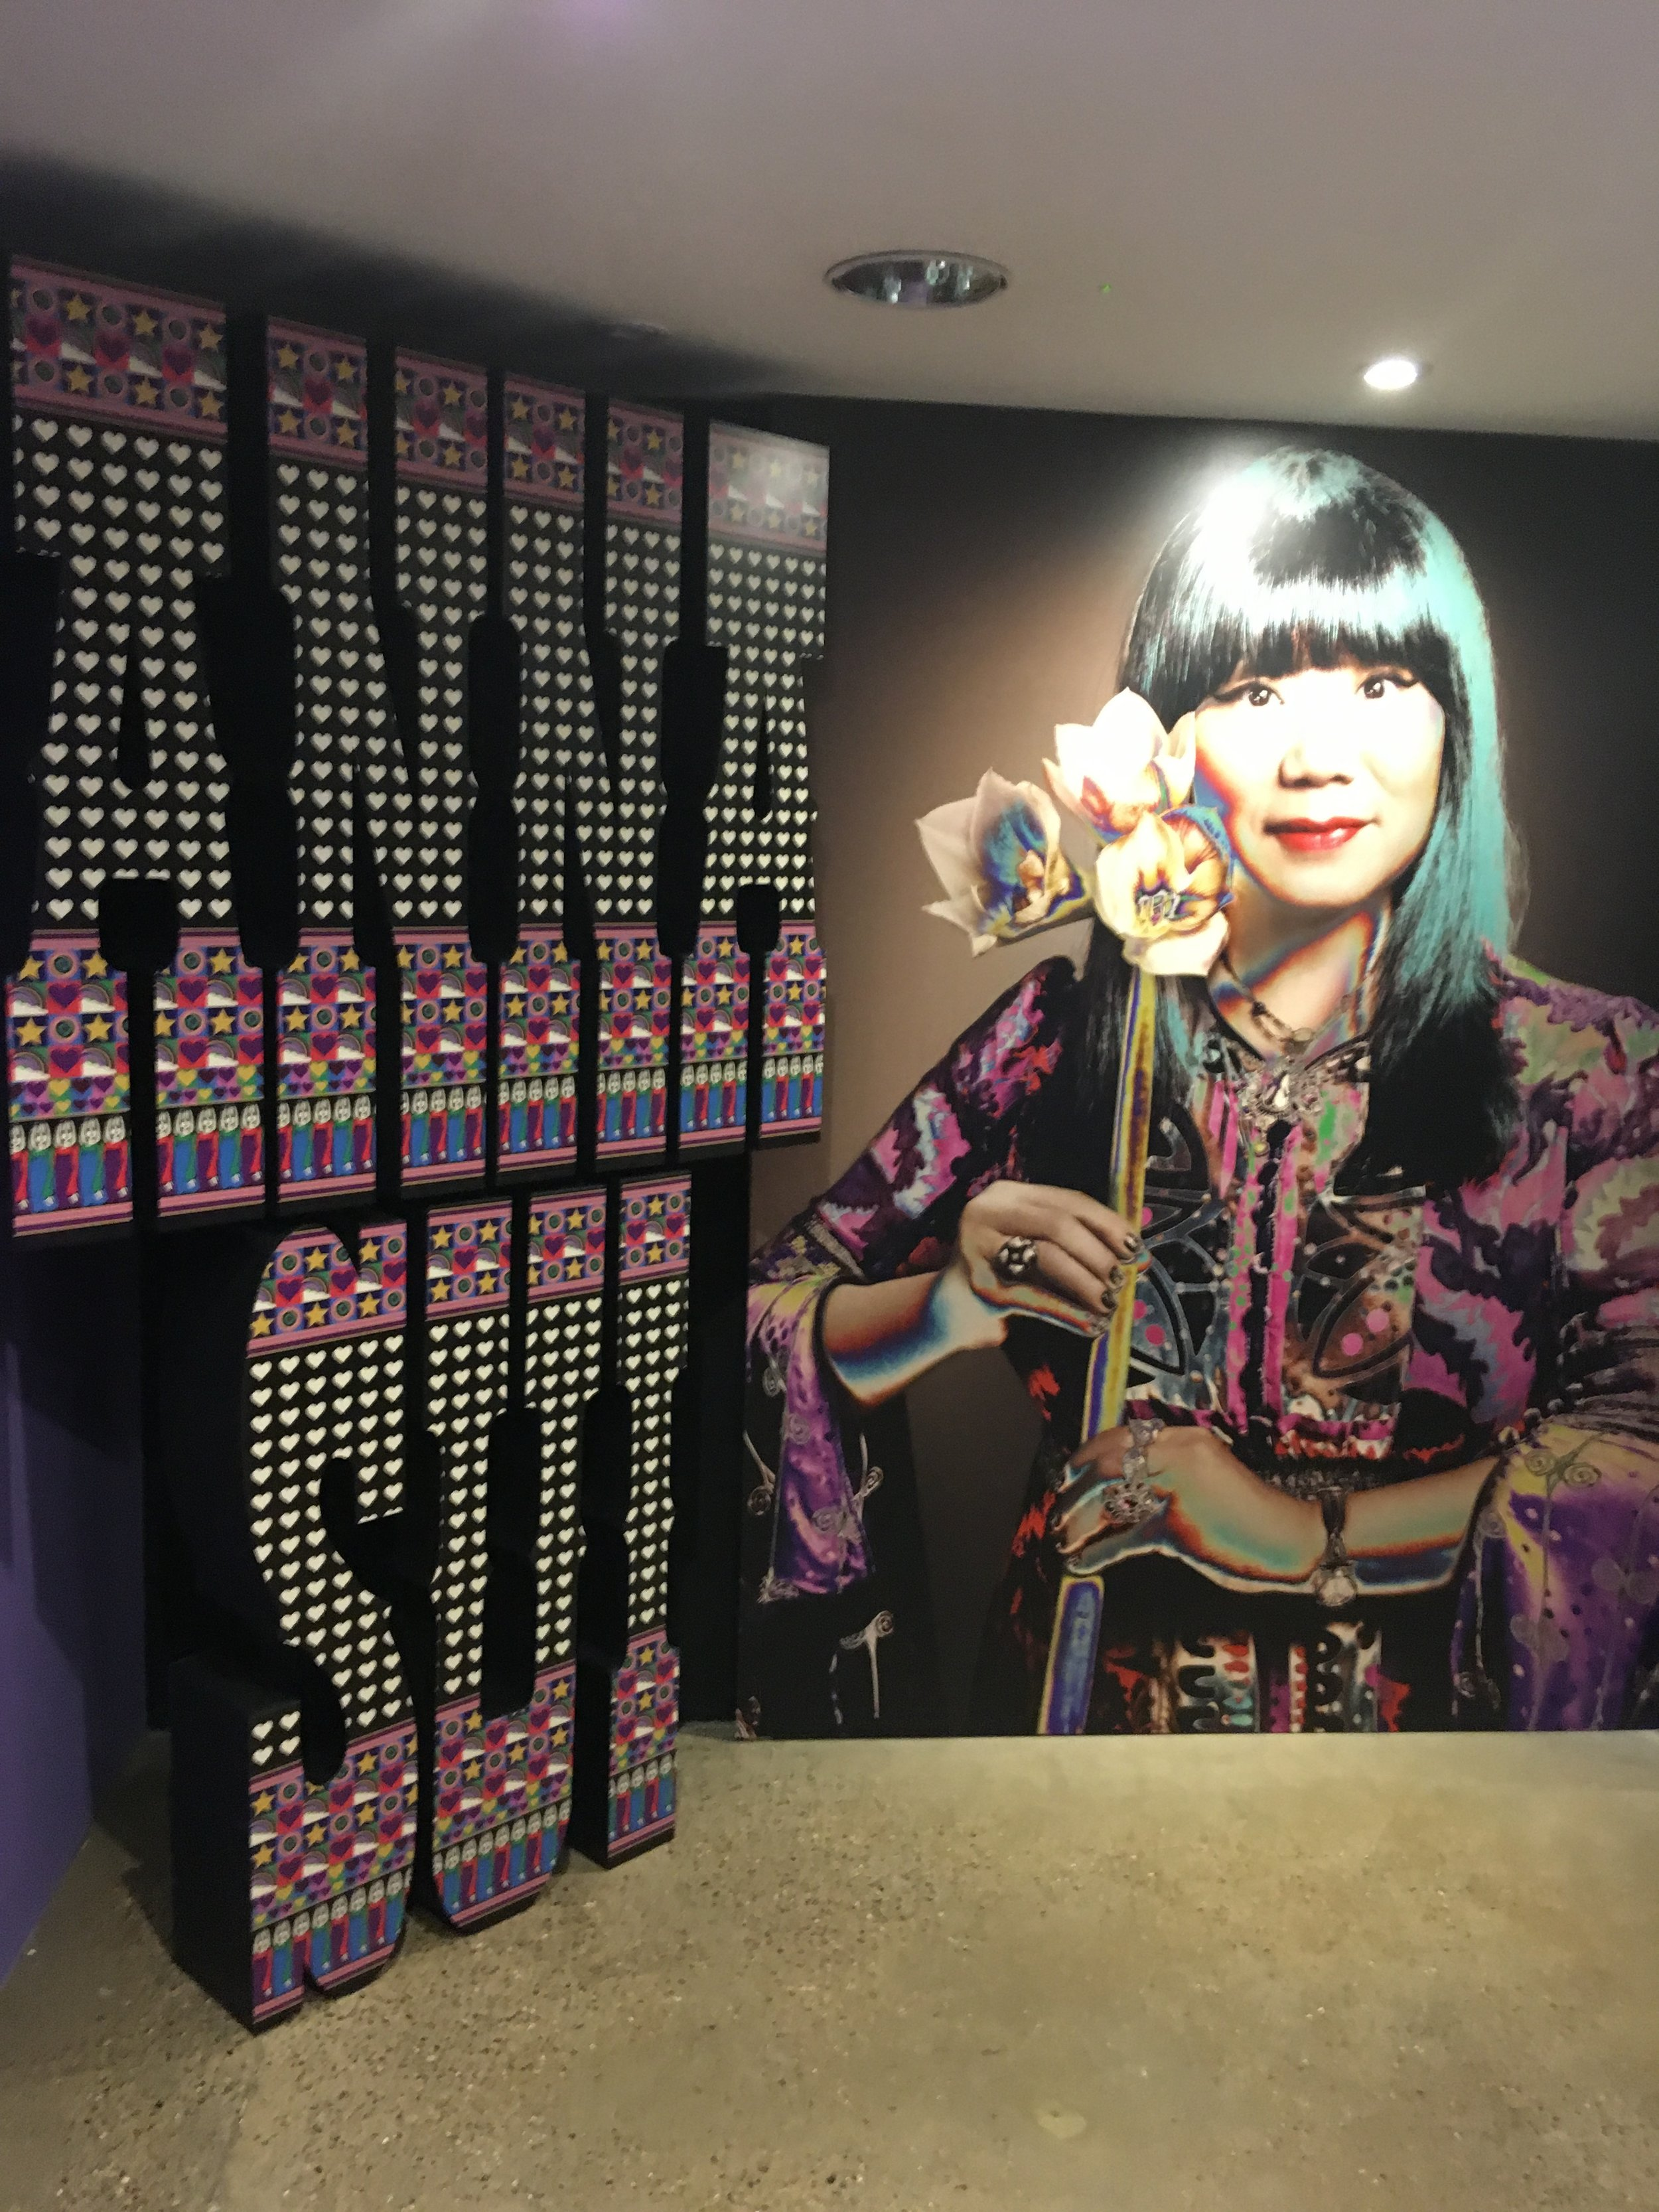 London stylists: The World of Anna Sui provides not only a fascinating guide to the history of American pop culture, but also a powerful inside look into the creative process and unique world view of this iconic New York designer.